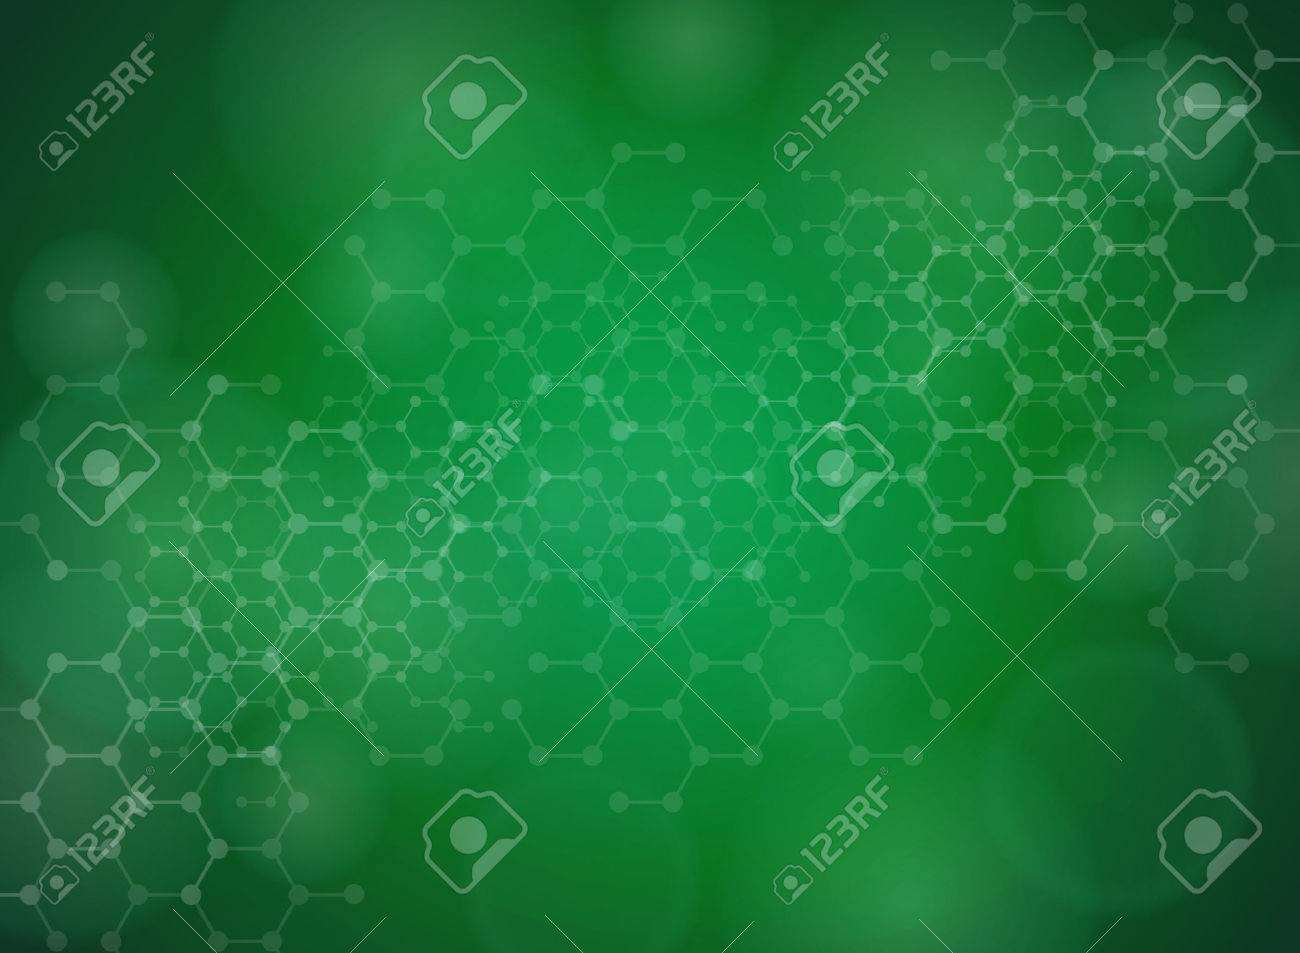 Abstract molecules medical background - 25431249